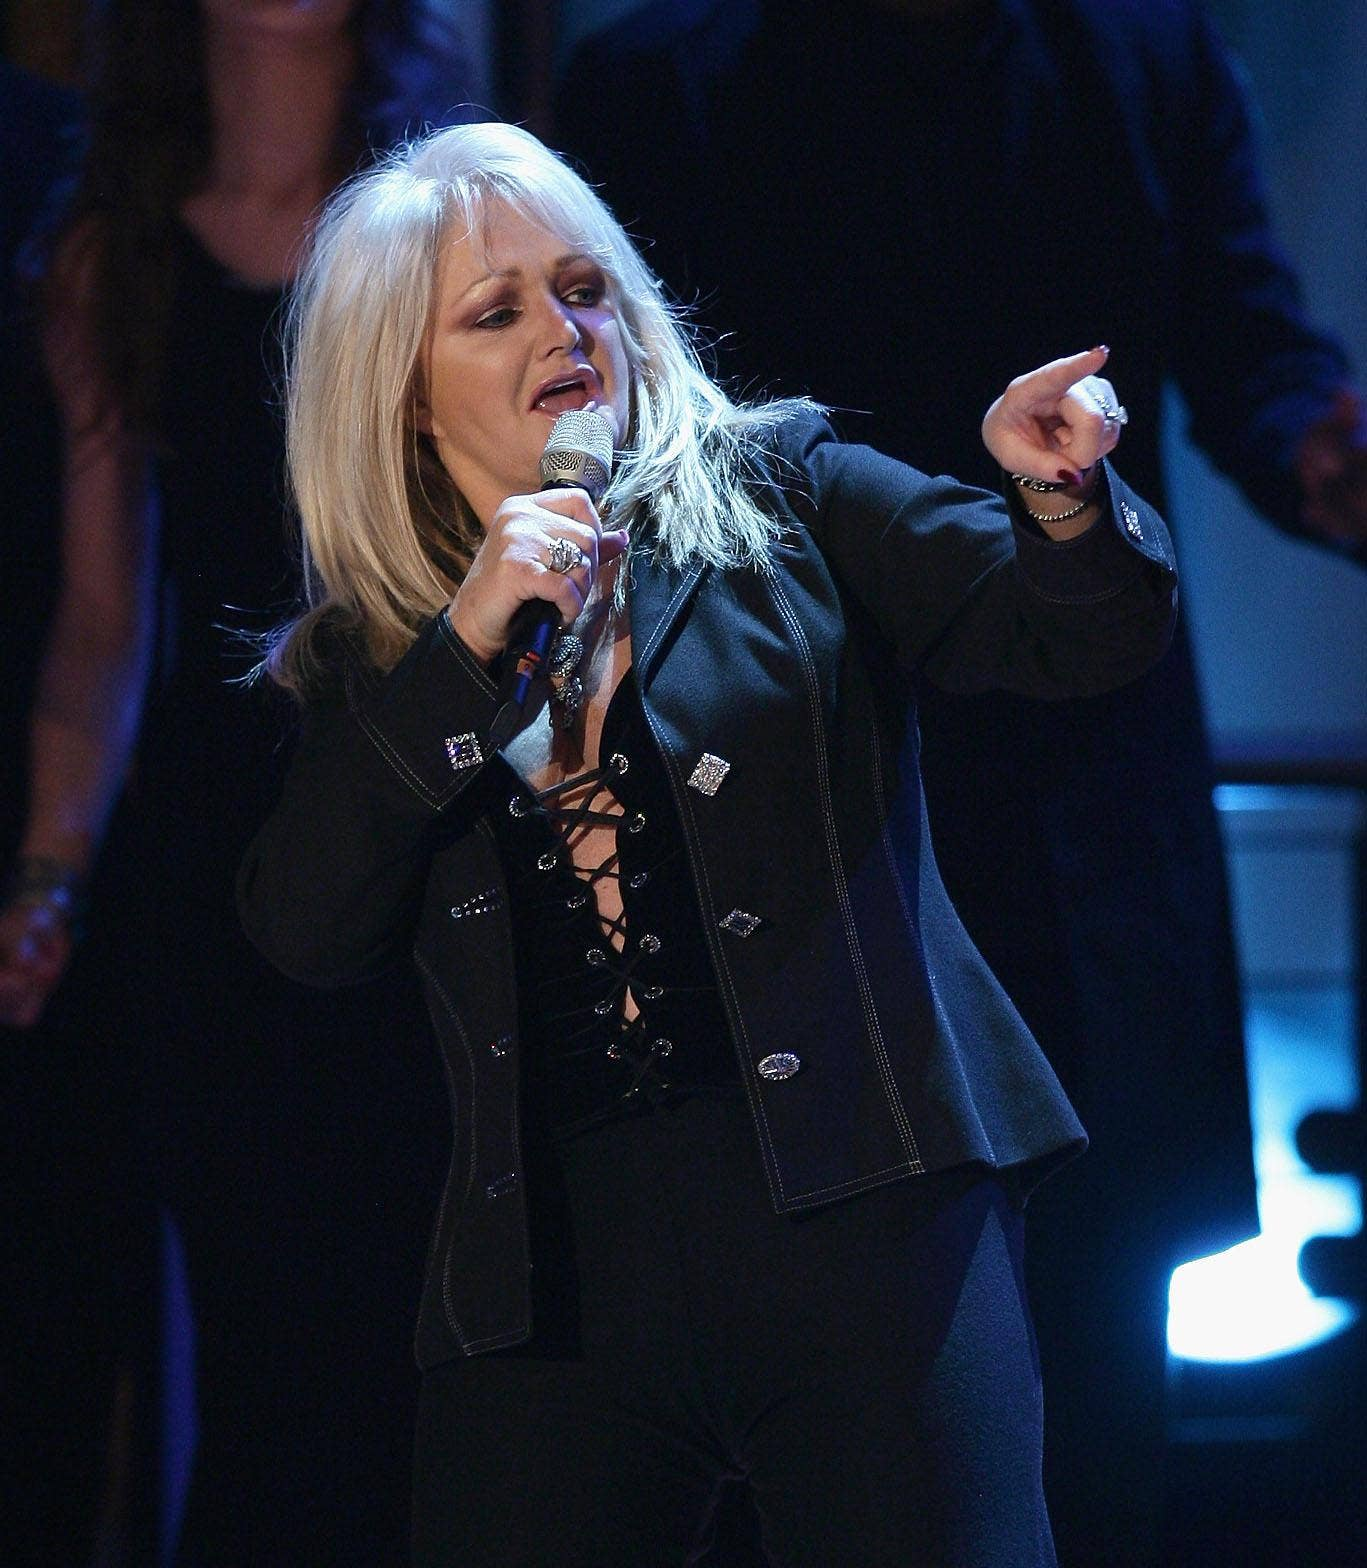 Bonnie Tyler will represent UK in Eurovision